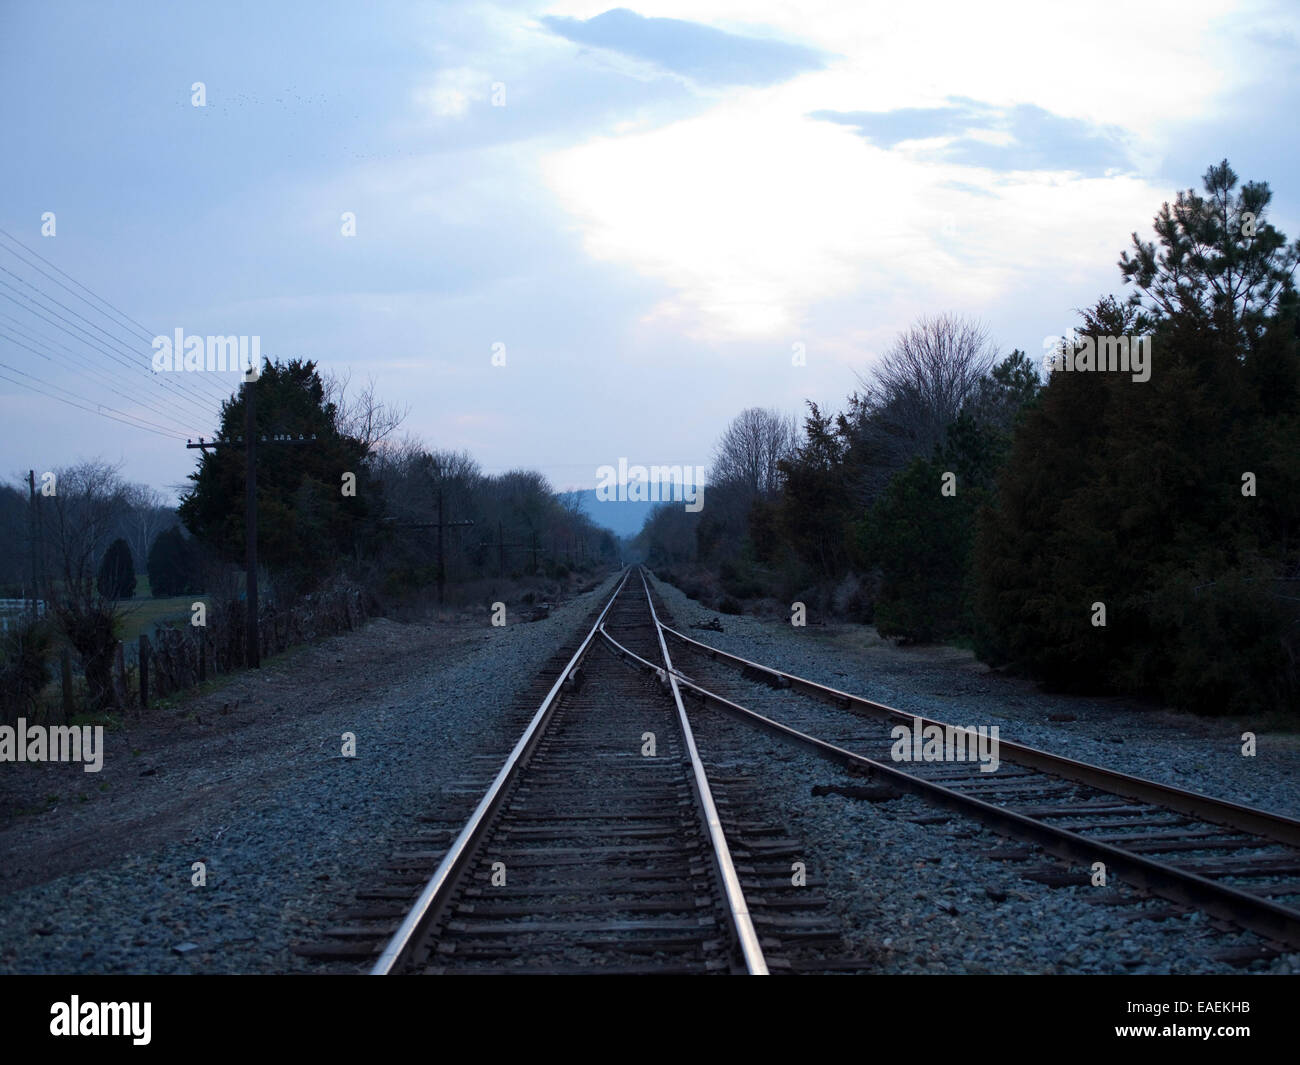 train tracks at dusk receding in the rural countryside. - Stock Image